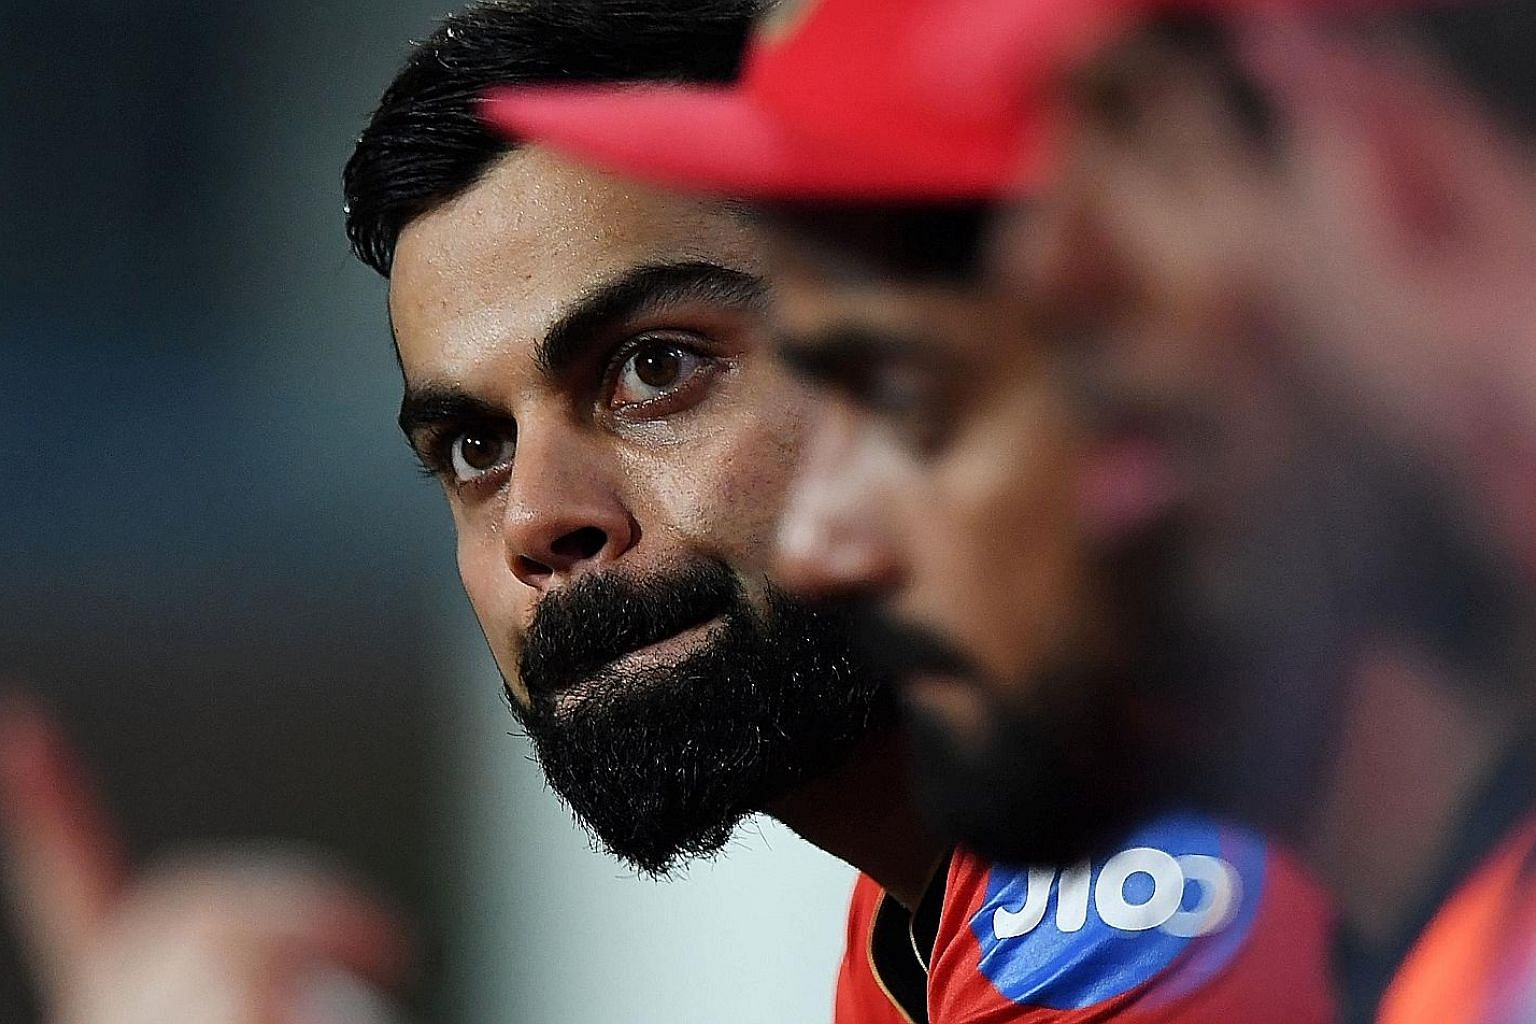 Royal Challengers Bangalore captain Virat Kohli watching his team slump to an IPL-record total of just 49. The powerful batting line-up lasted just 58 deliveries.